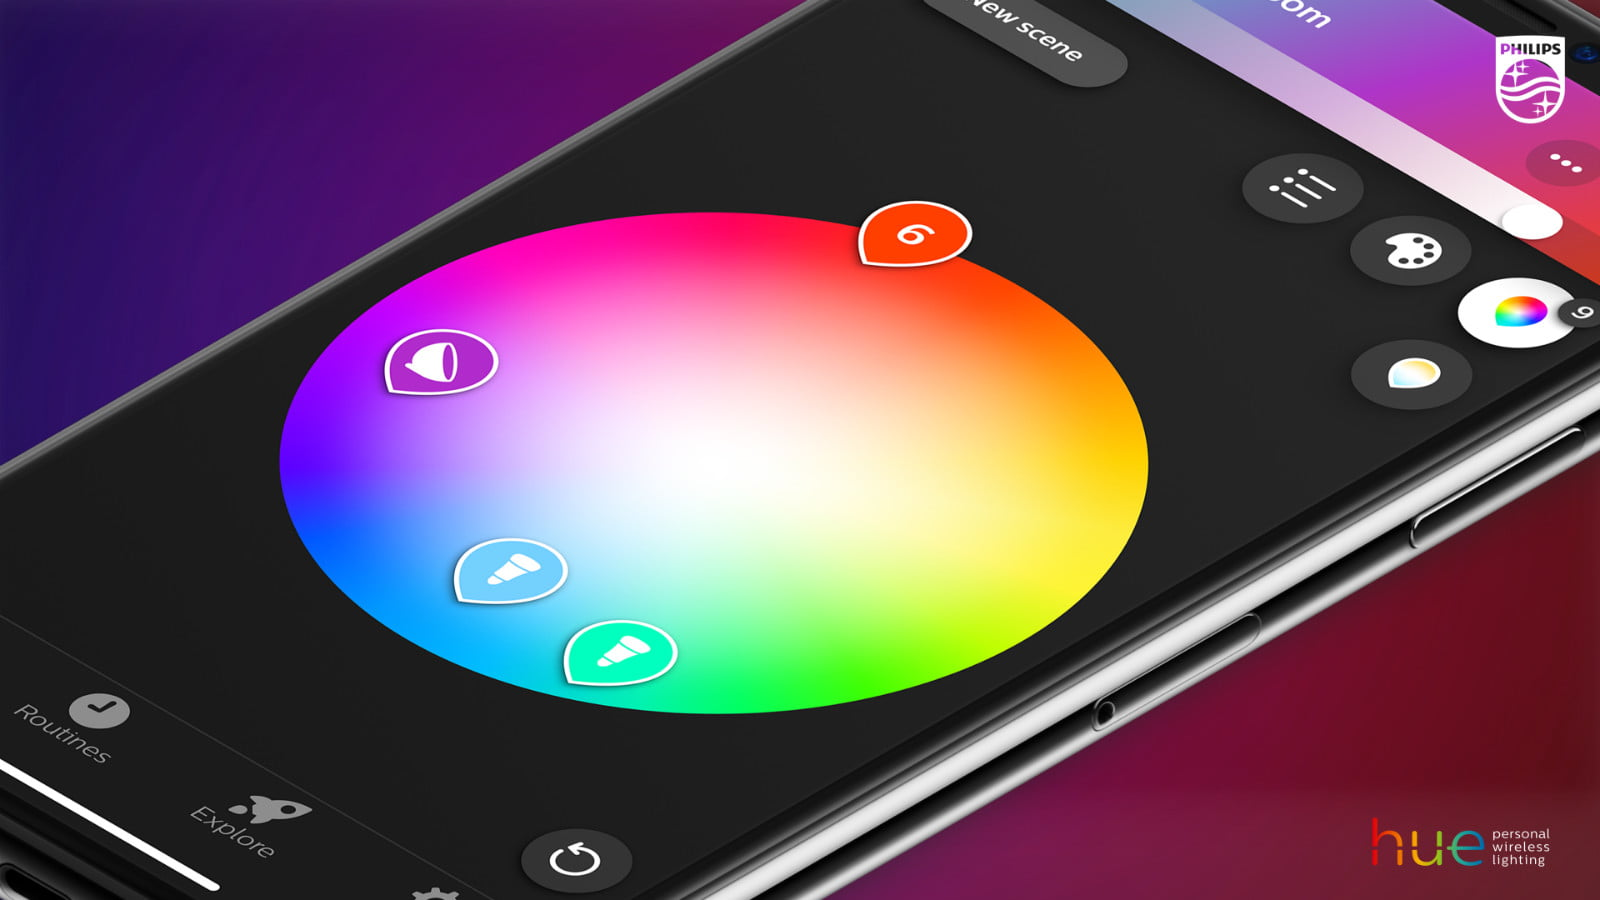 Hue Philips App Philips Hue Smart Home Lighting App Gets Easier With New Features